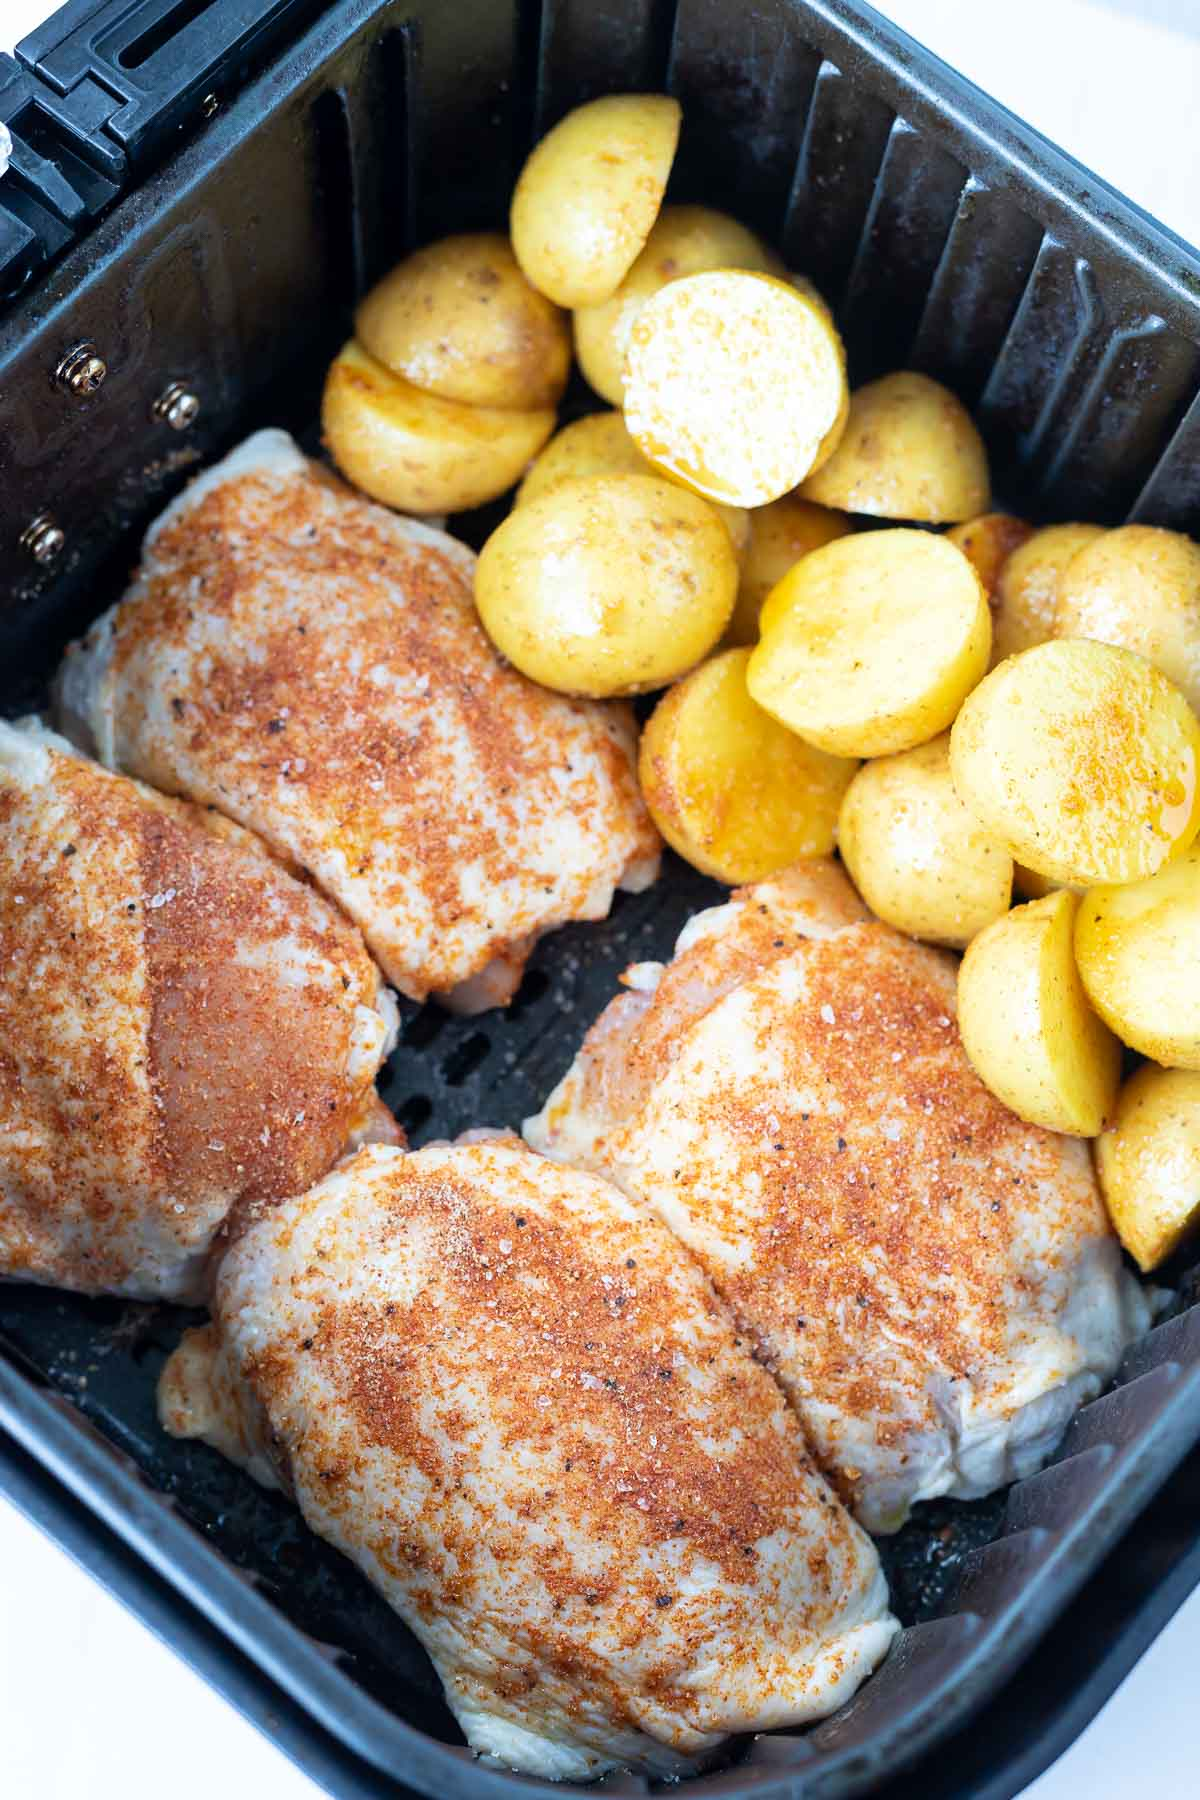 raw chicken and potatoes in air fryer basket